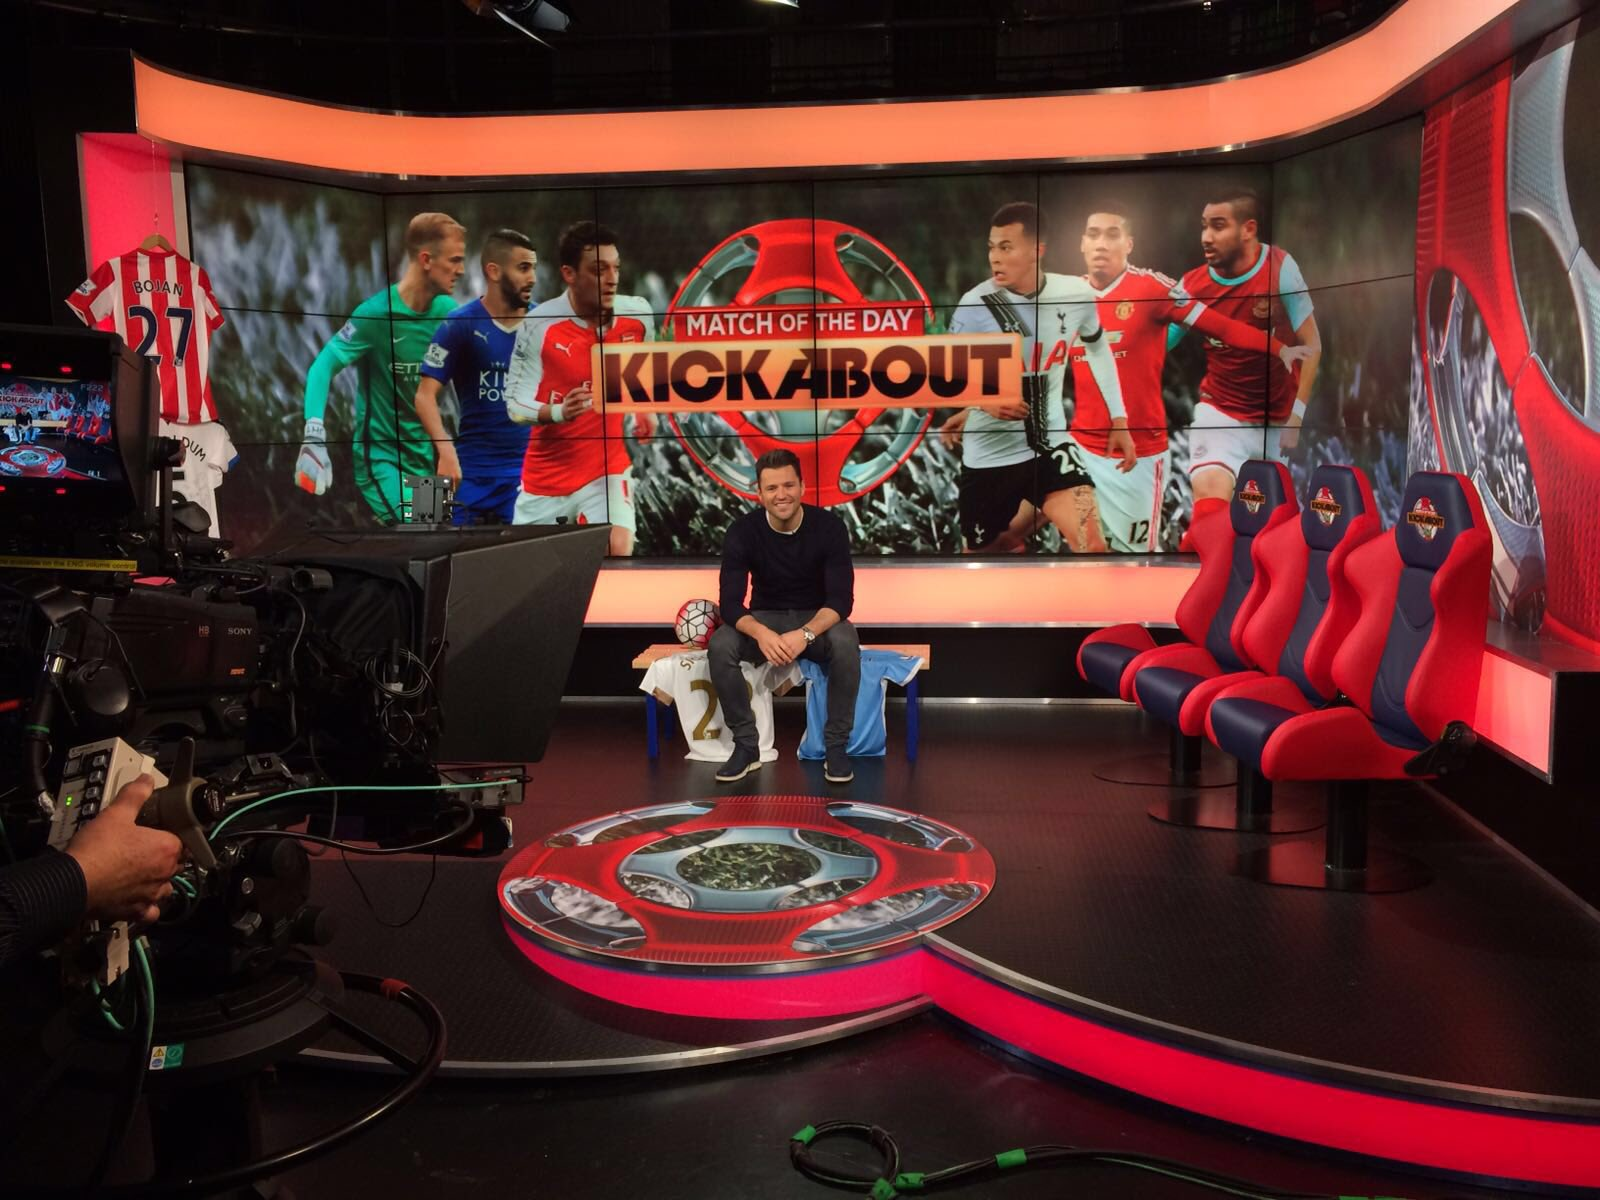 My first day hosting Match Of the day kick about Tomo morning on @Cbbc tune in https://t.co/LNx7ejOIIC